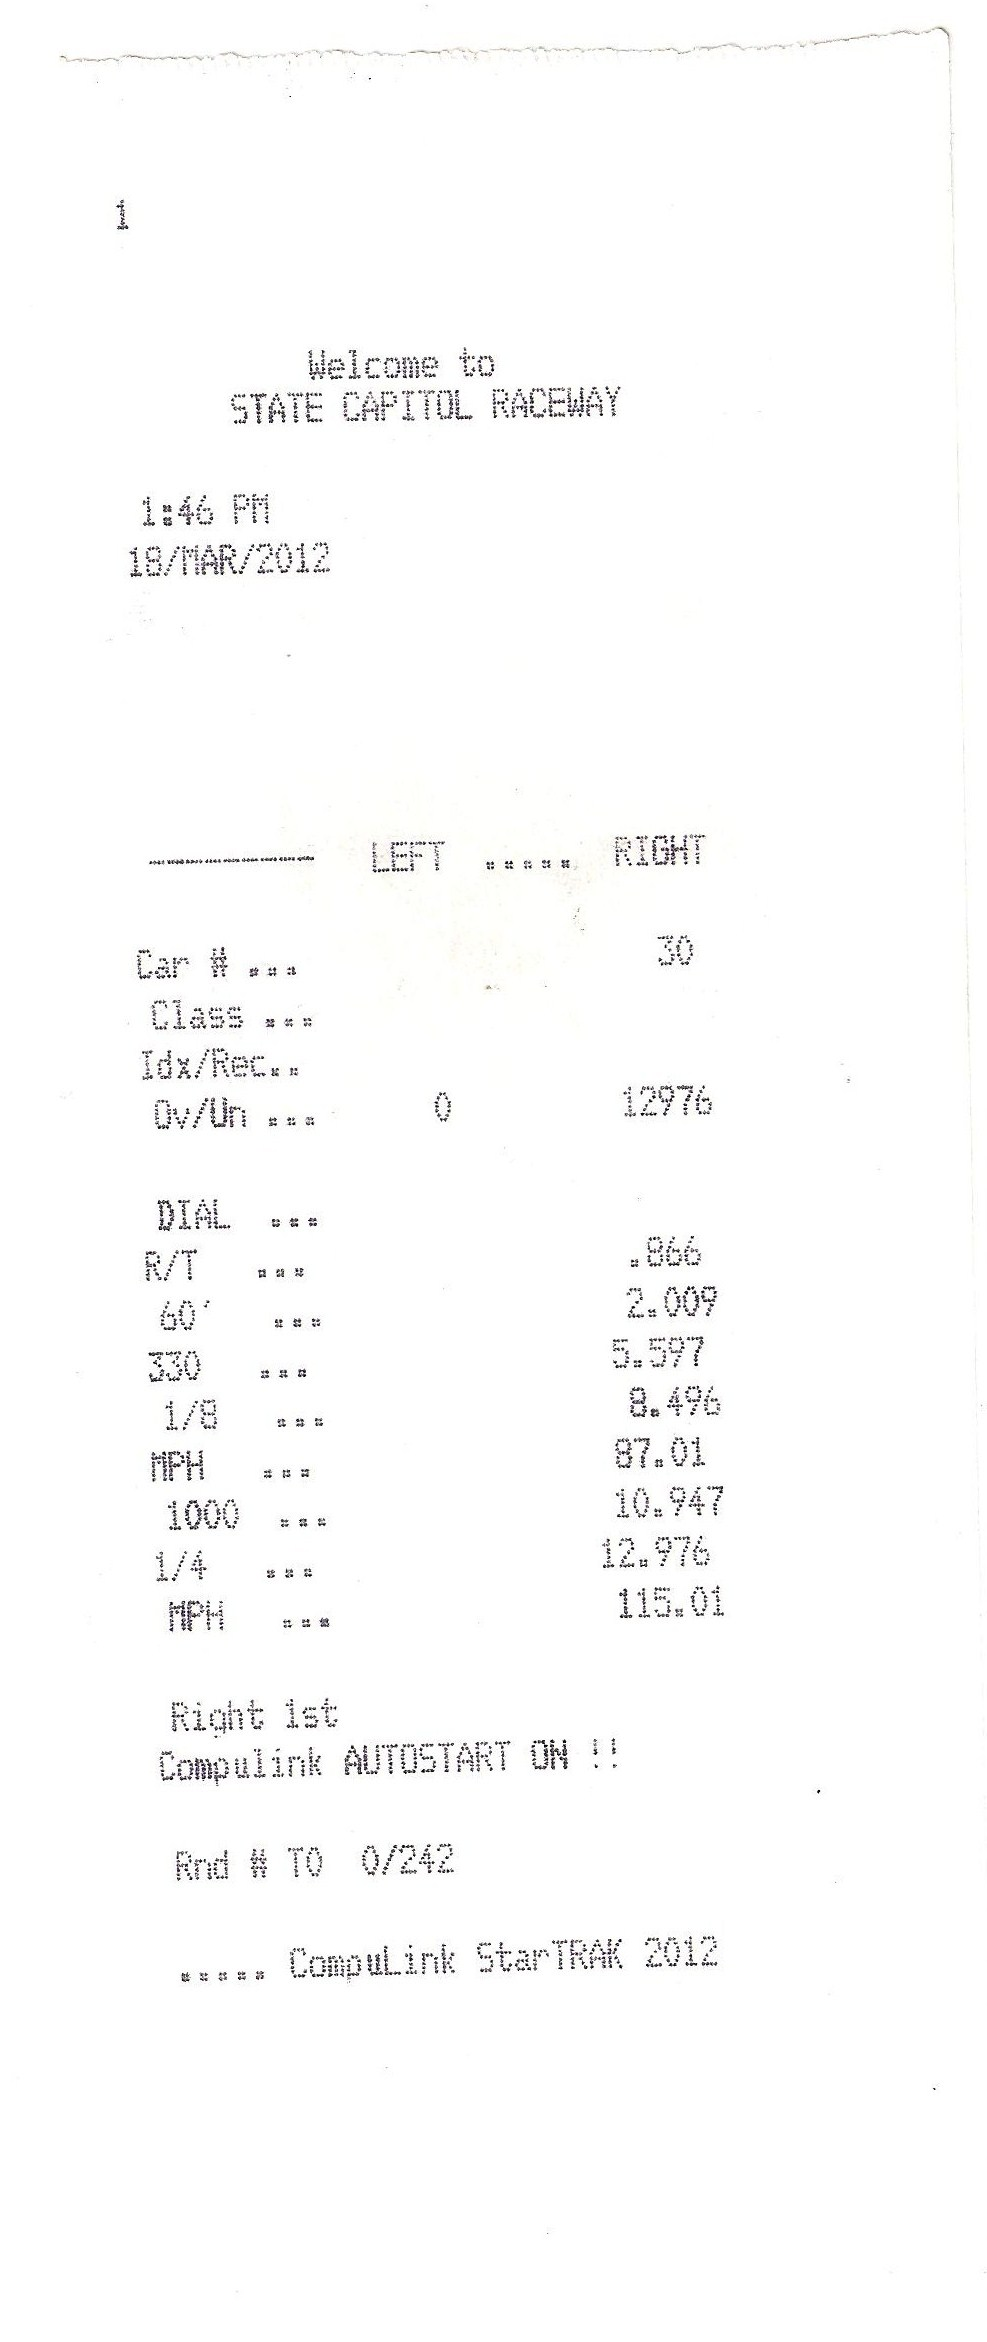 1995 Black Ford Mustang GT Timeslip Scan